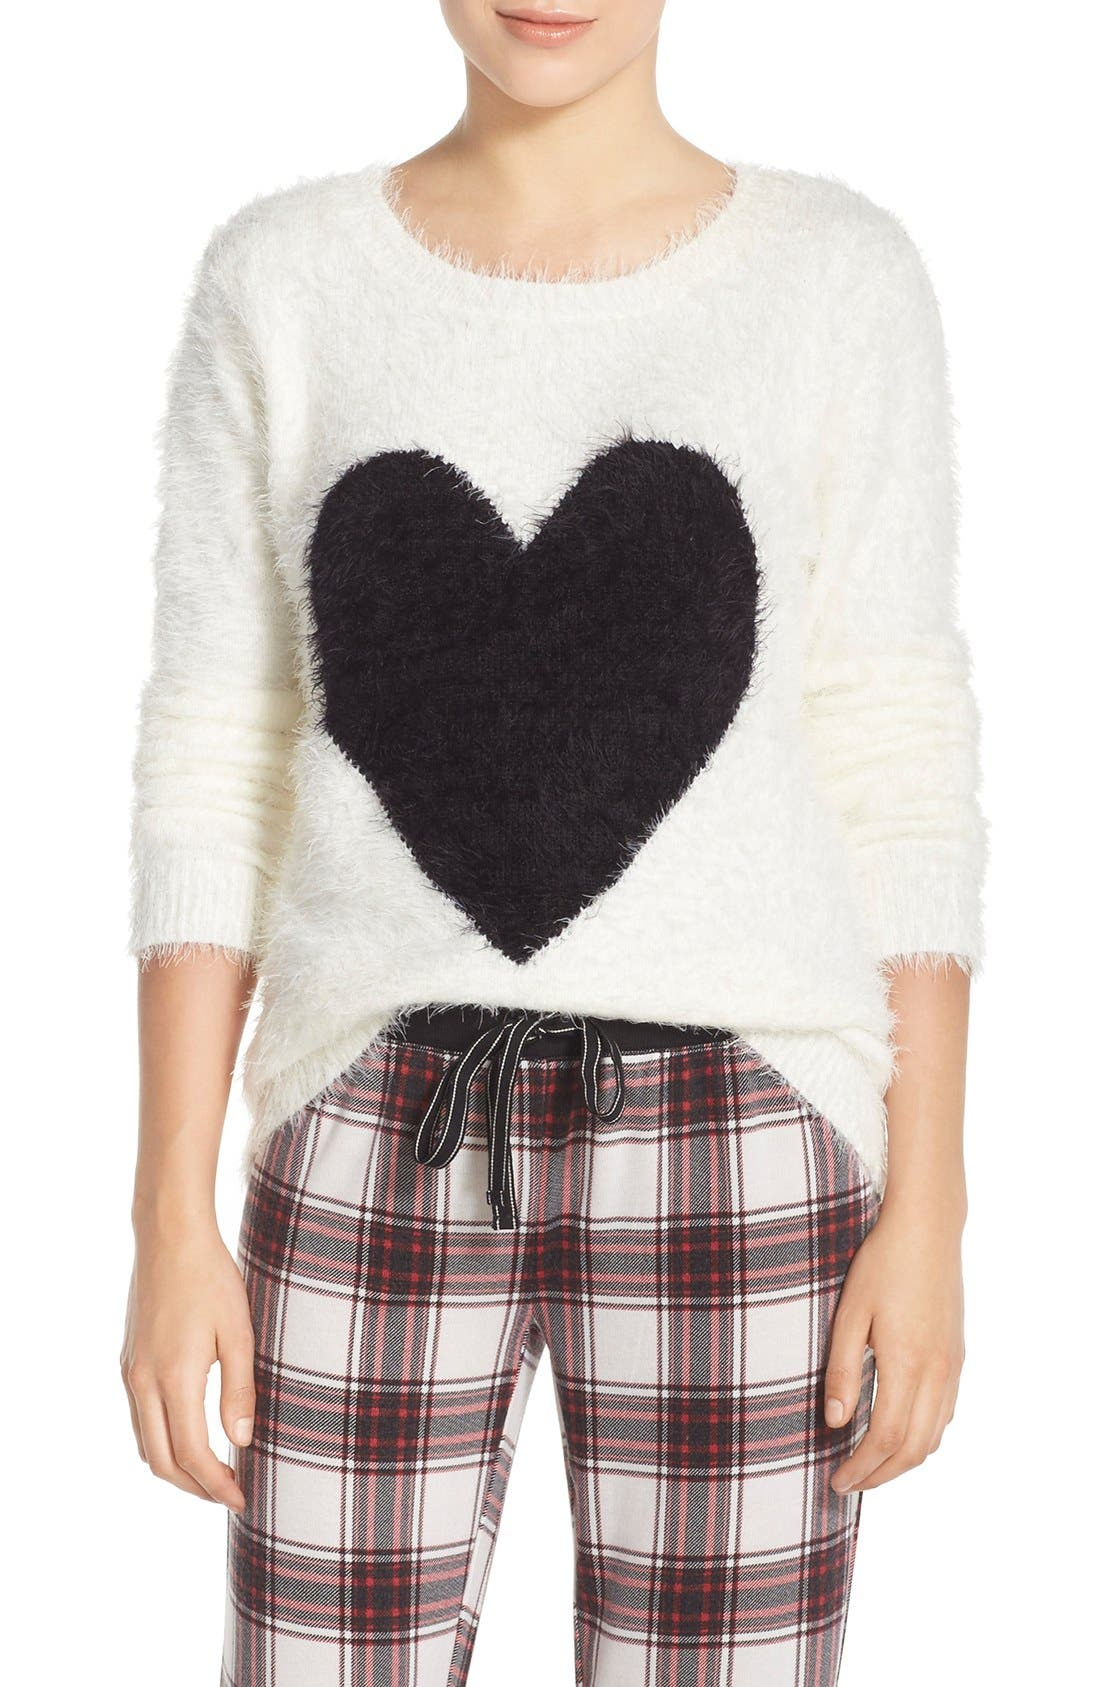 Alternate Image 1 Selected - PJ Salvage Heart Front Sweater